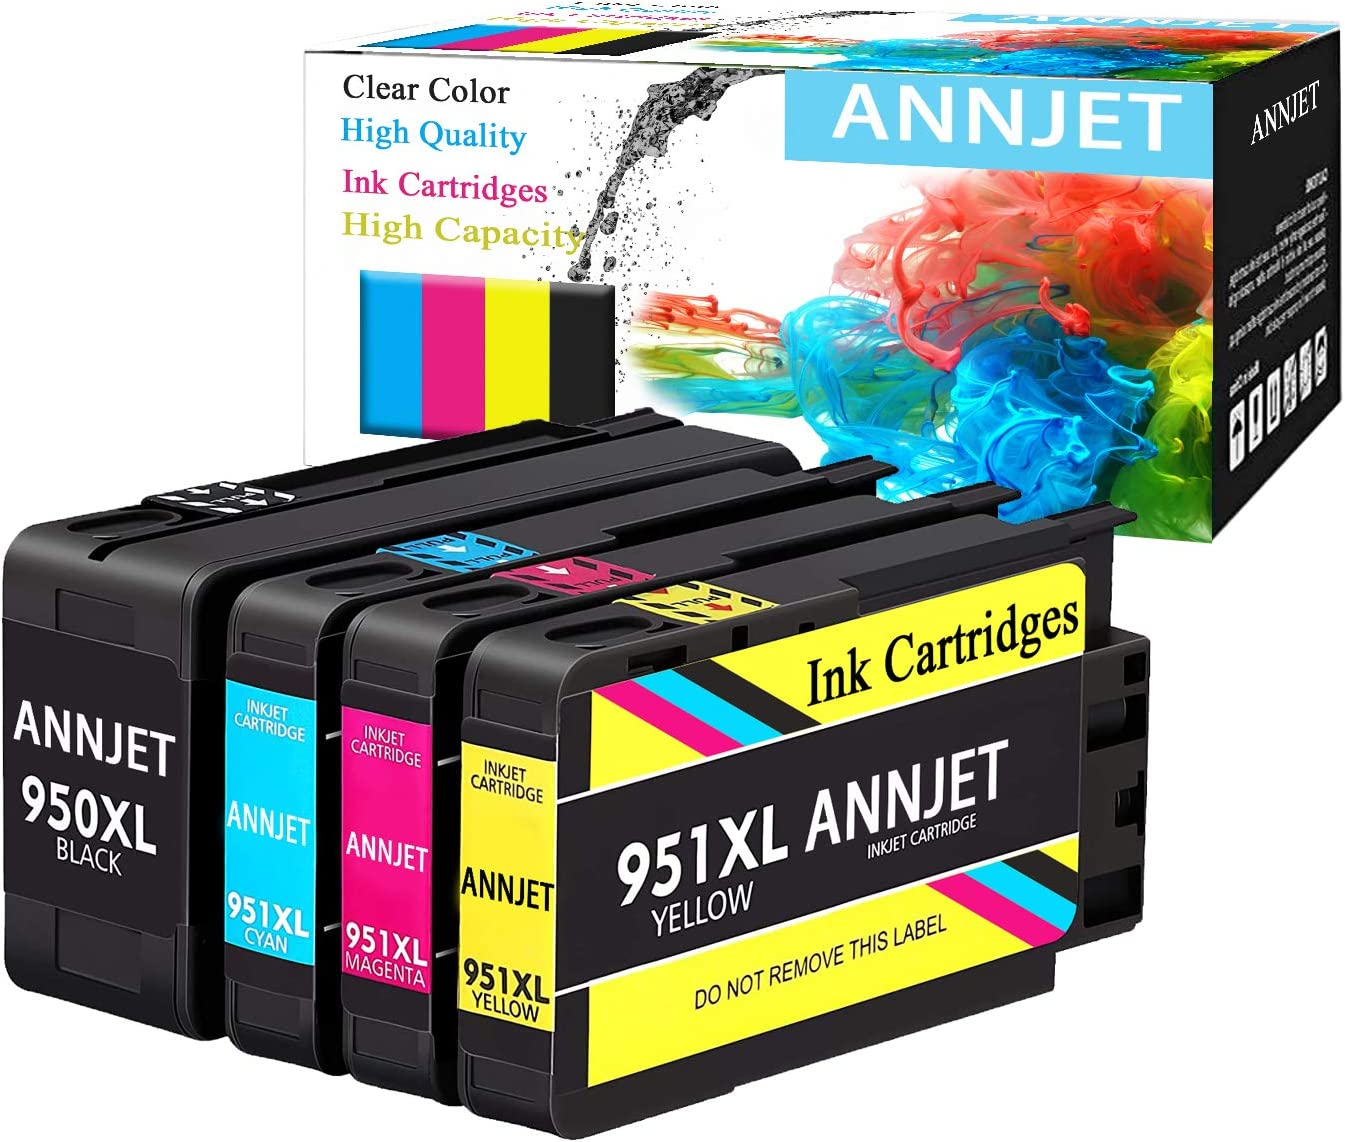 ANNJET Compatible Ink Cartridge Replacement for HP 950XL 951XL 950 951 Ink Cartridge Works with HP OfficeJet Pro 8600 8610 8620 8100 8630 8660 8640 8615 8625 276DW 251DW 271DW(4 Pack)